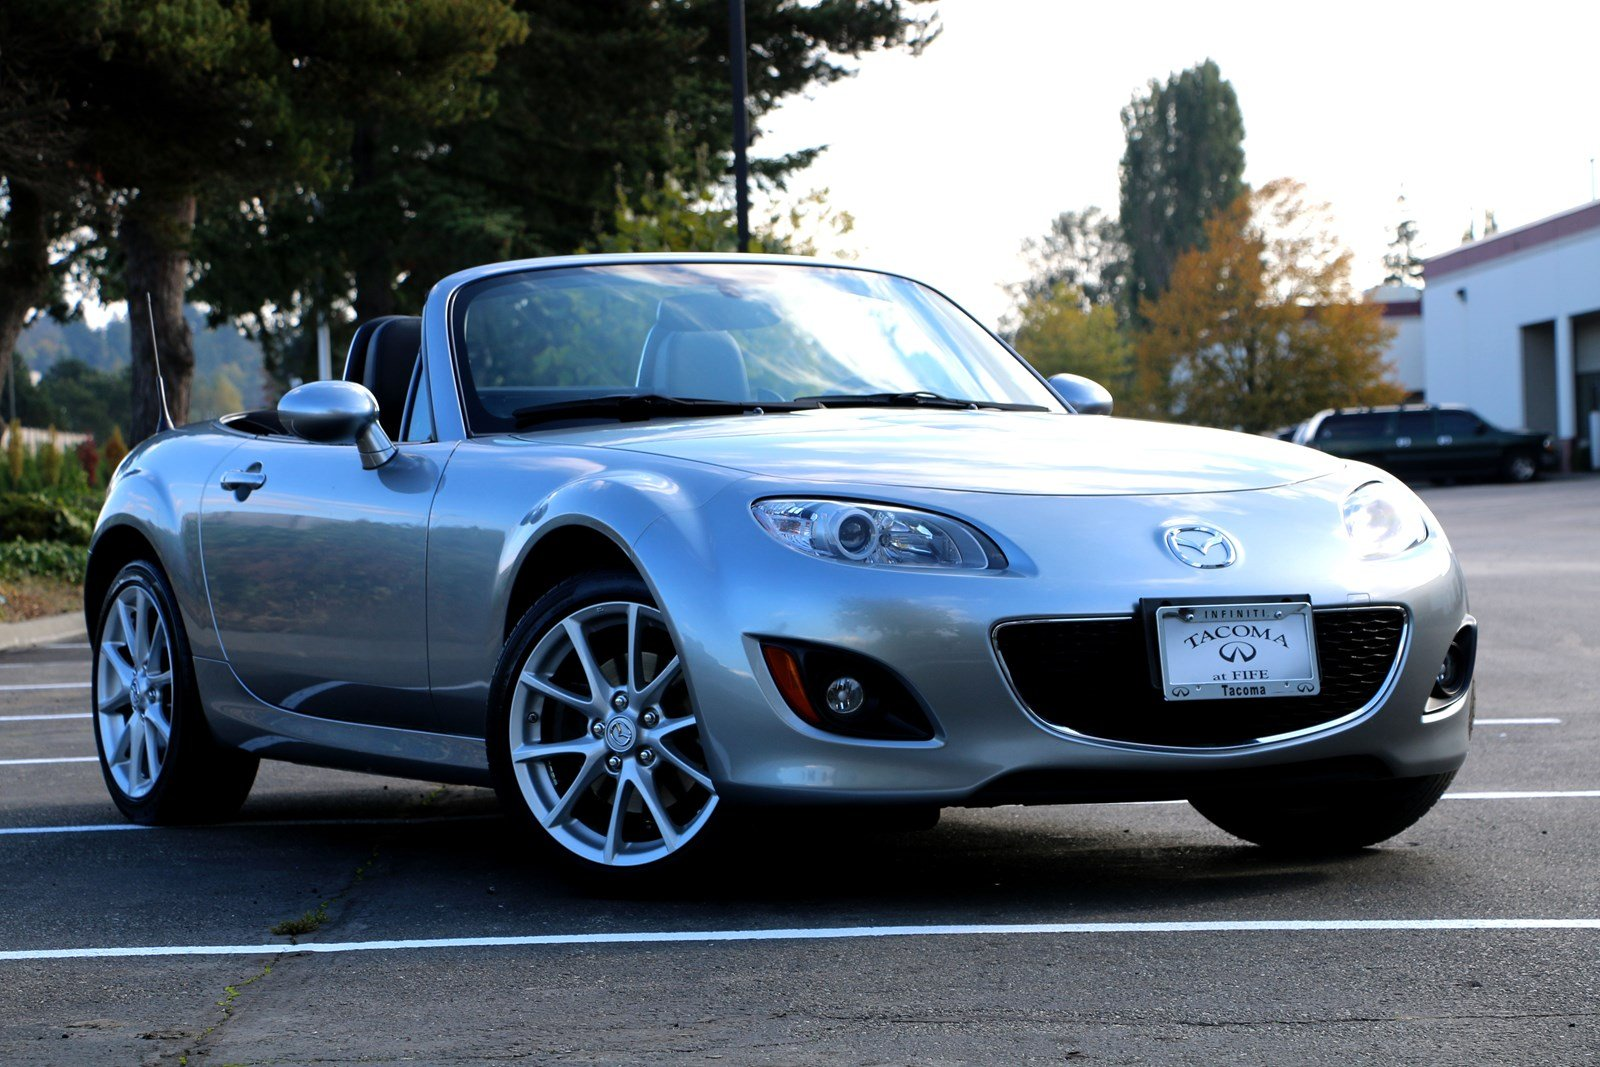 Pre-Owned 2011 Mazda MX-5 Miata Grand Touring